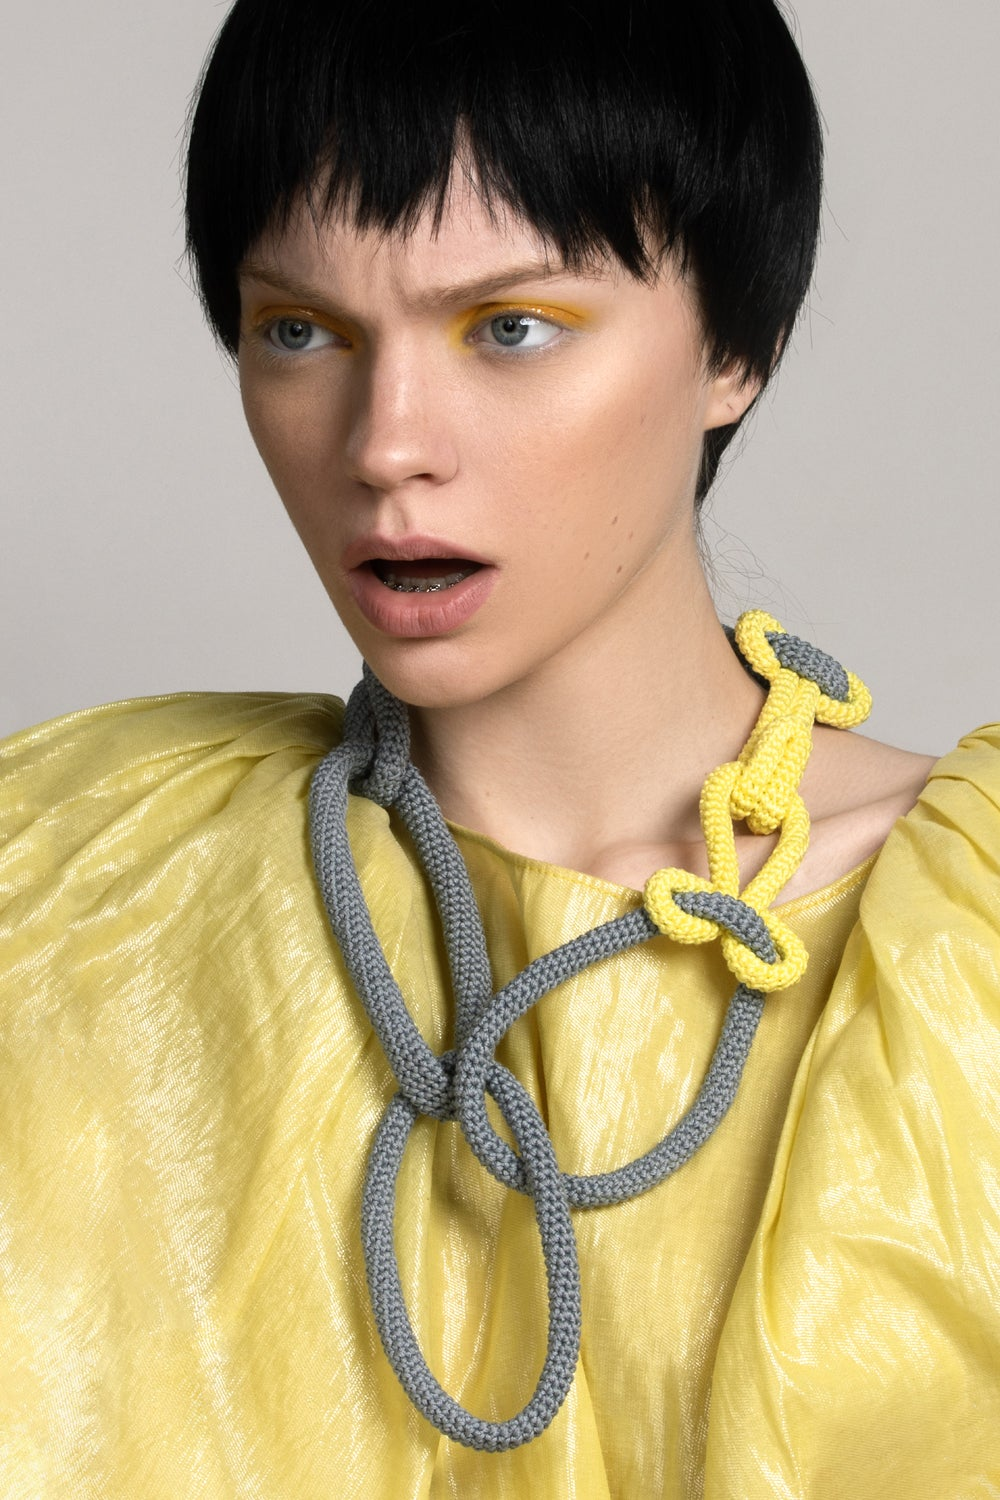 Image of Crochet Chain Necklace in Gray and Illuminating Yellow